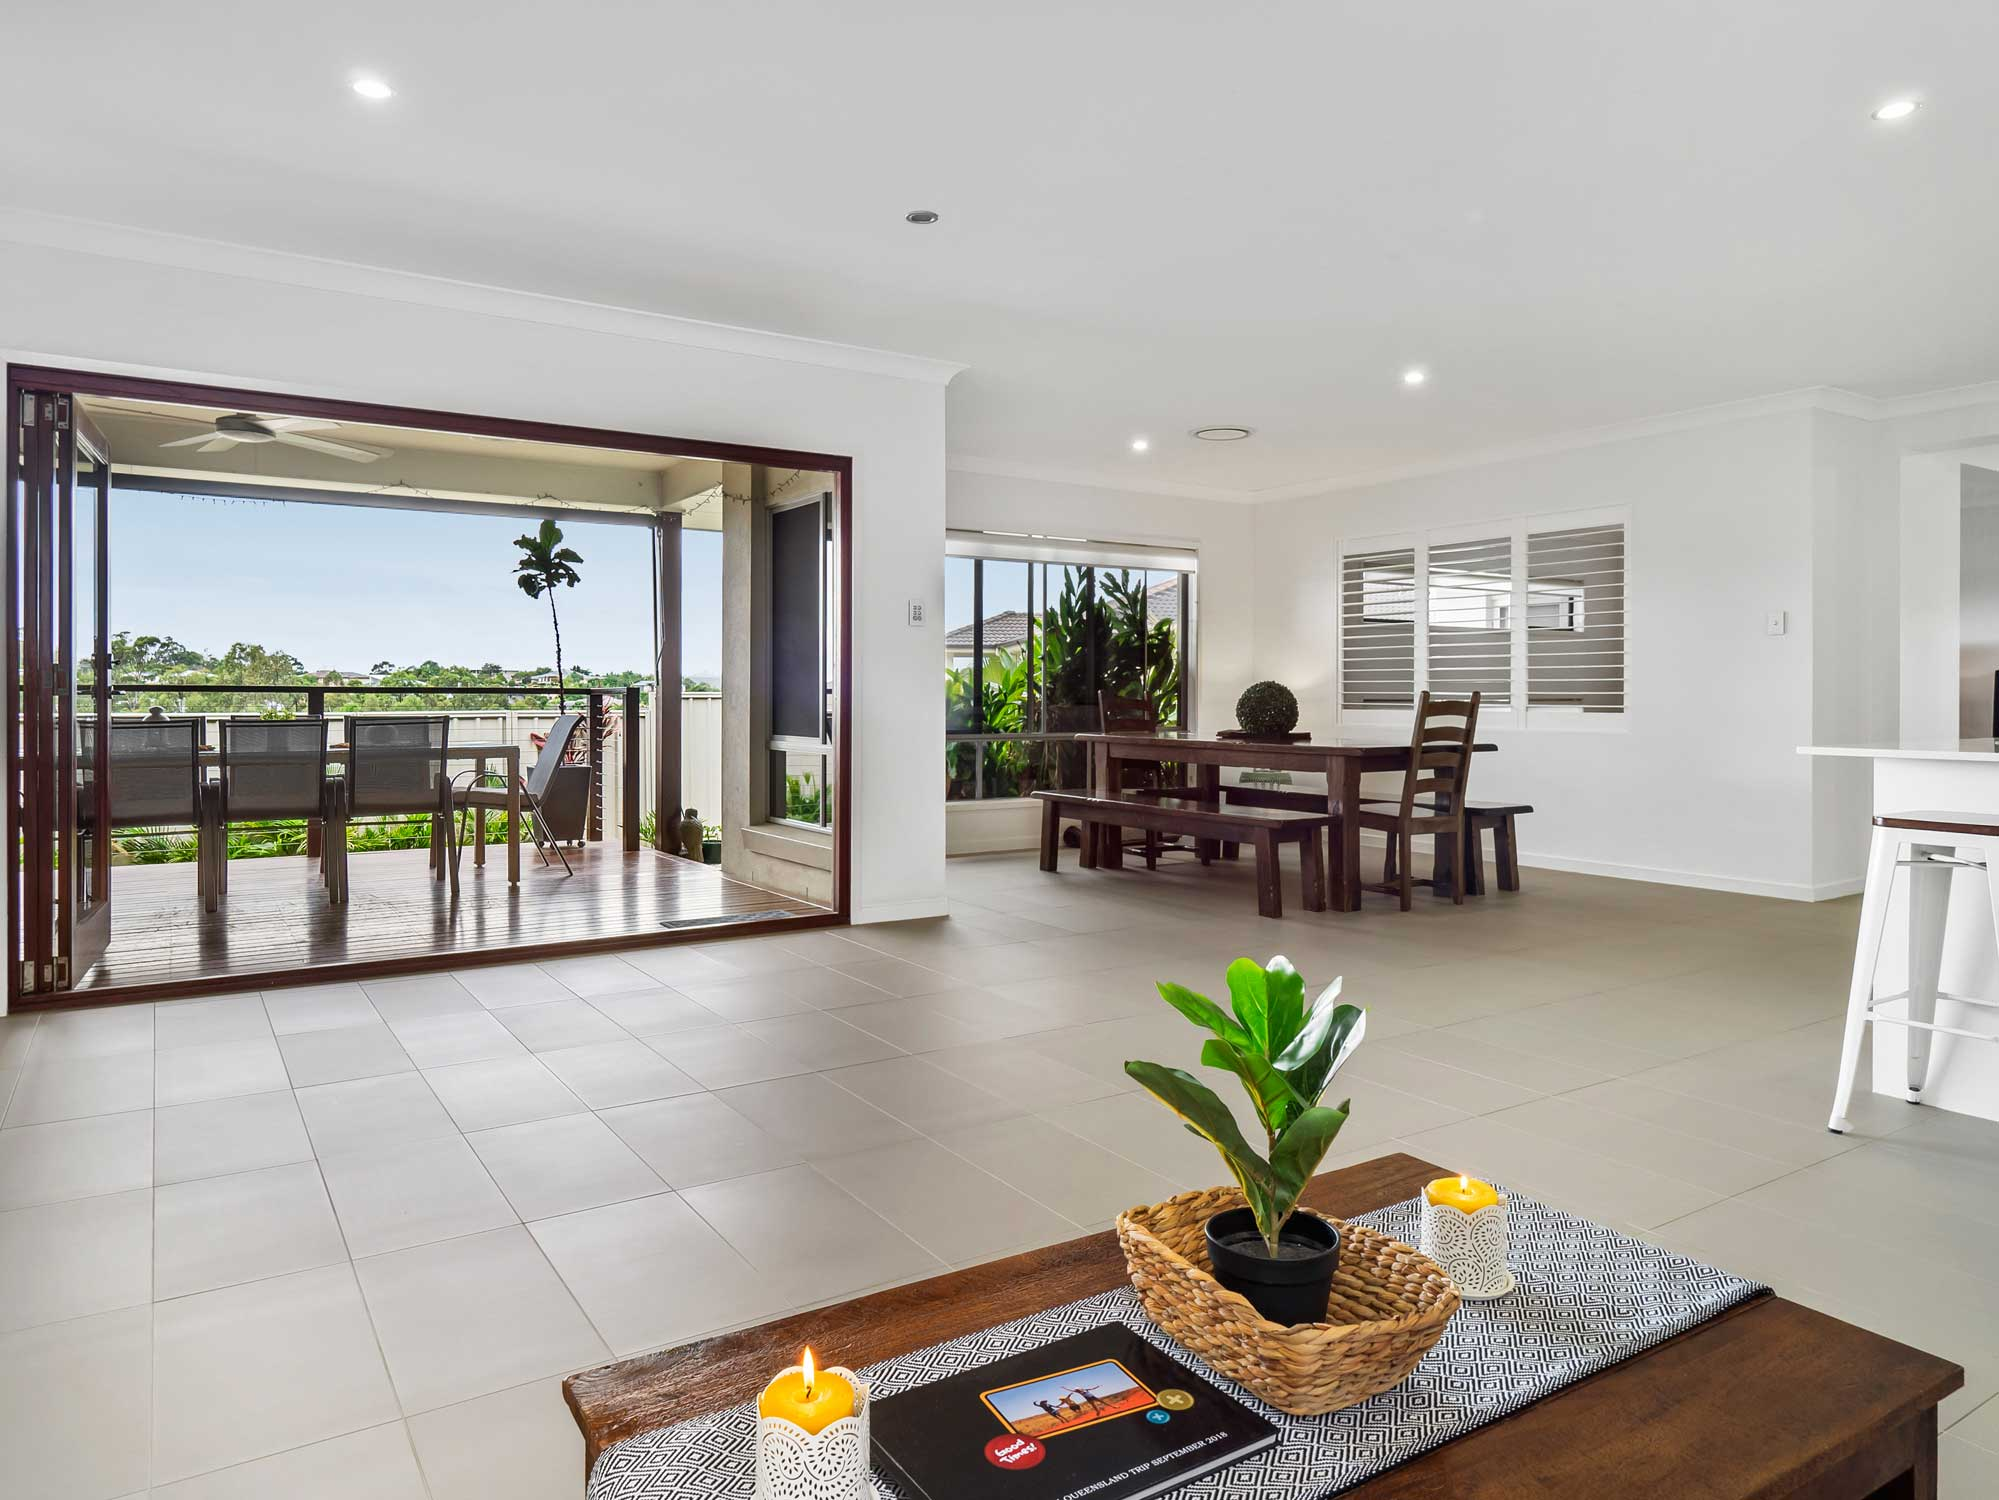 Real estate photography for a new home listing at Cashmere, Brisbane north side